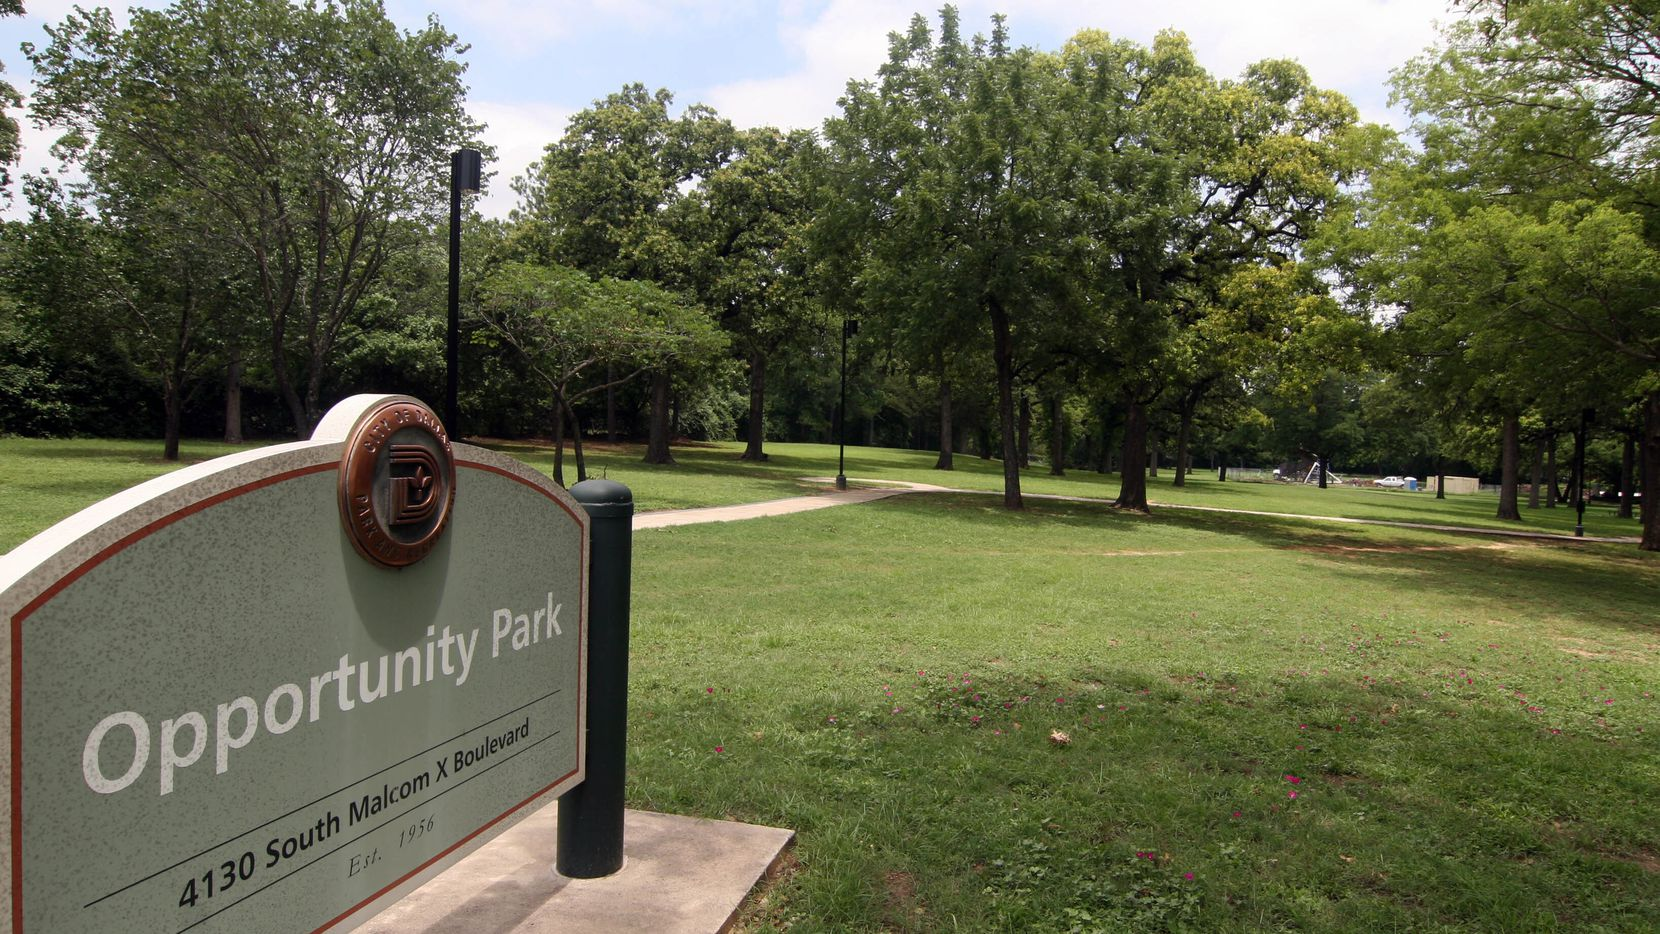 This 2007 file photo shows Opportunity Park in South Dallas which is being renamed to honor former council member Leo V. Chaney.